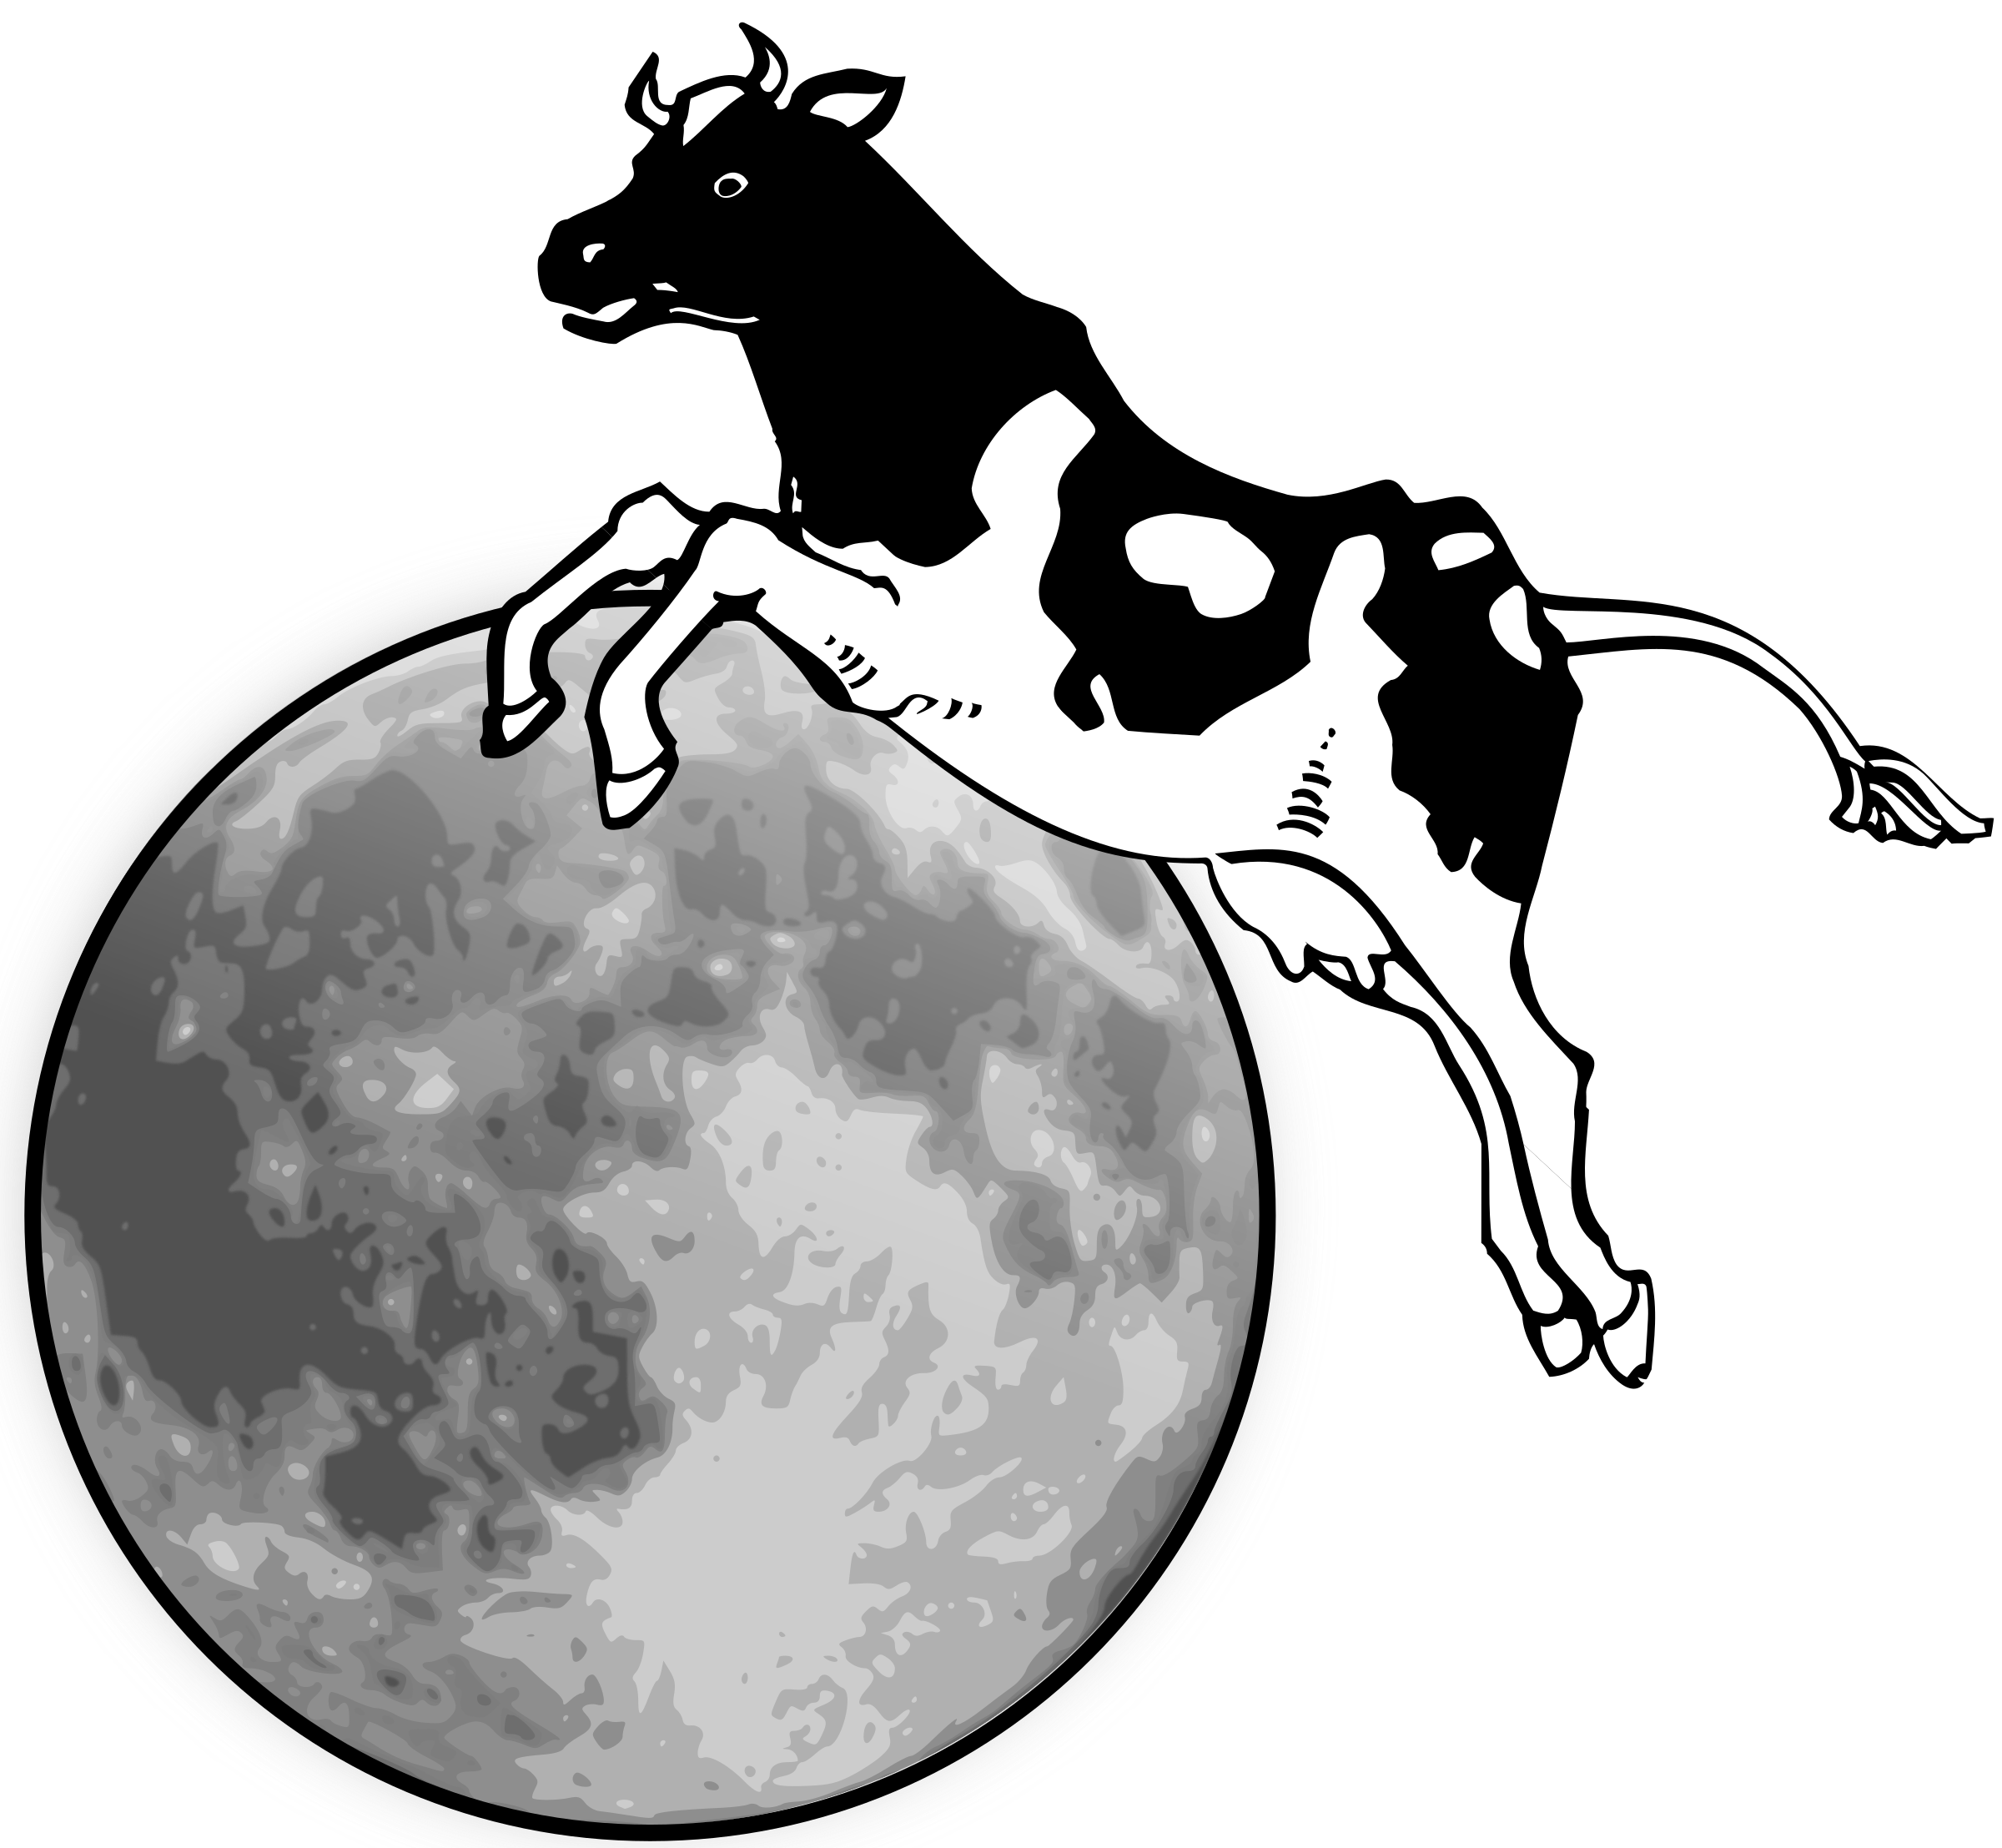 The cow jumps over the moon by Manuela.